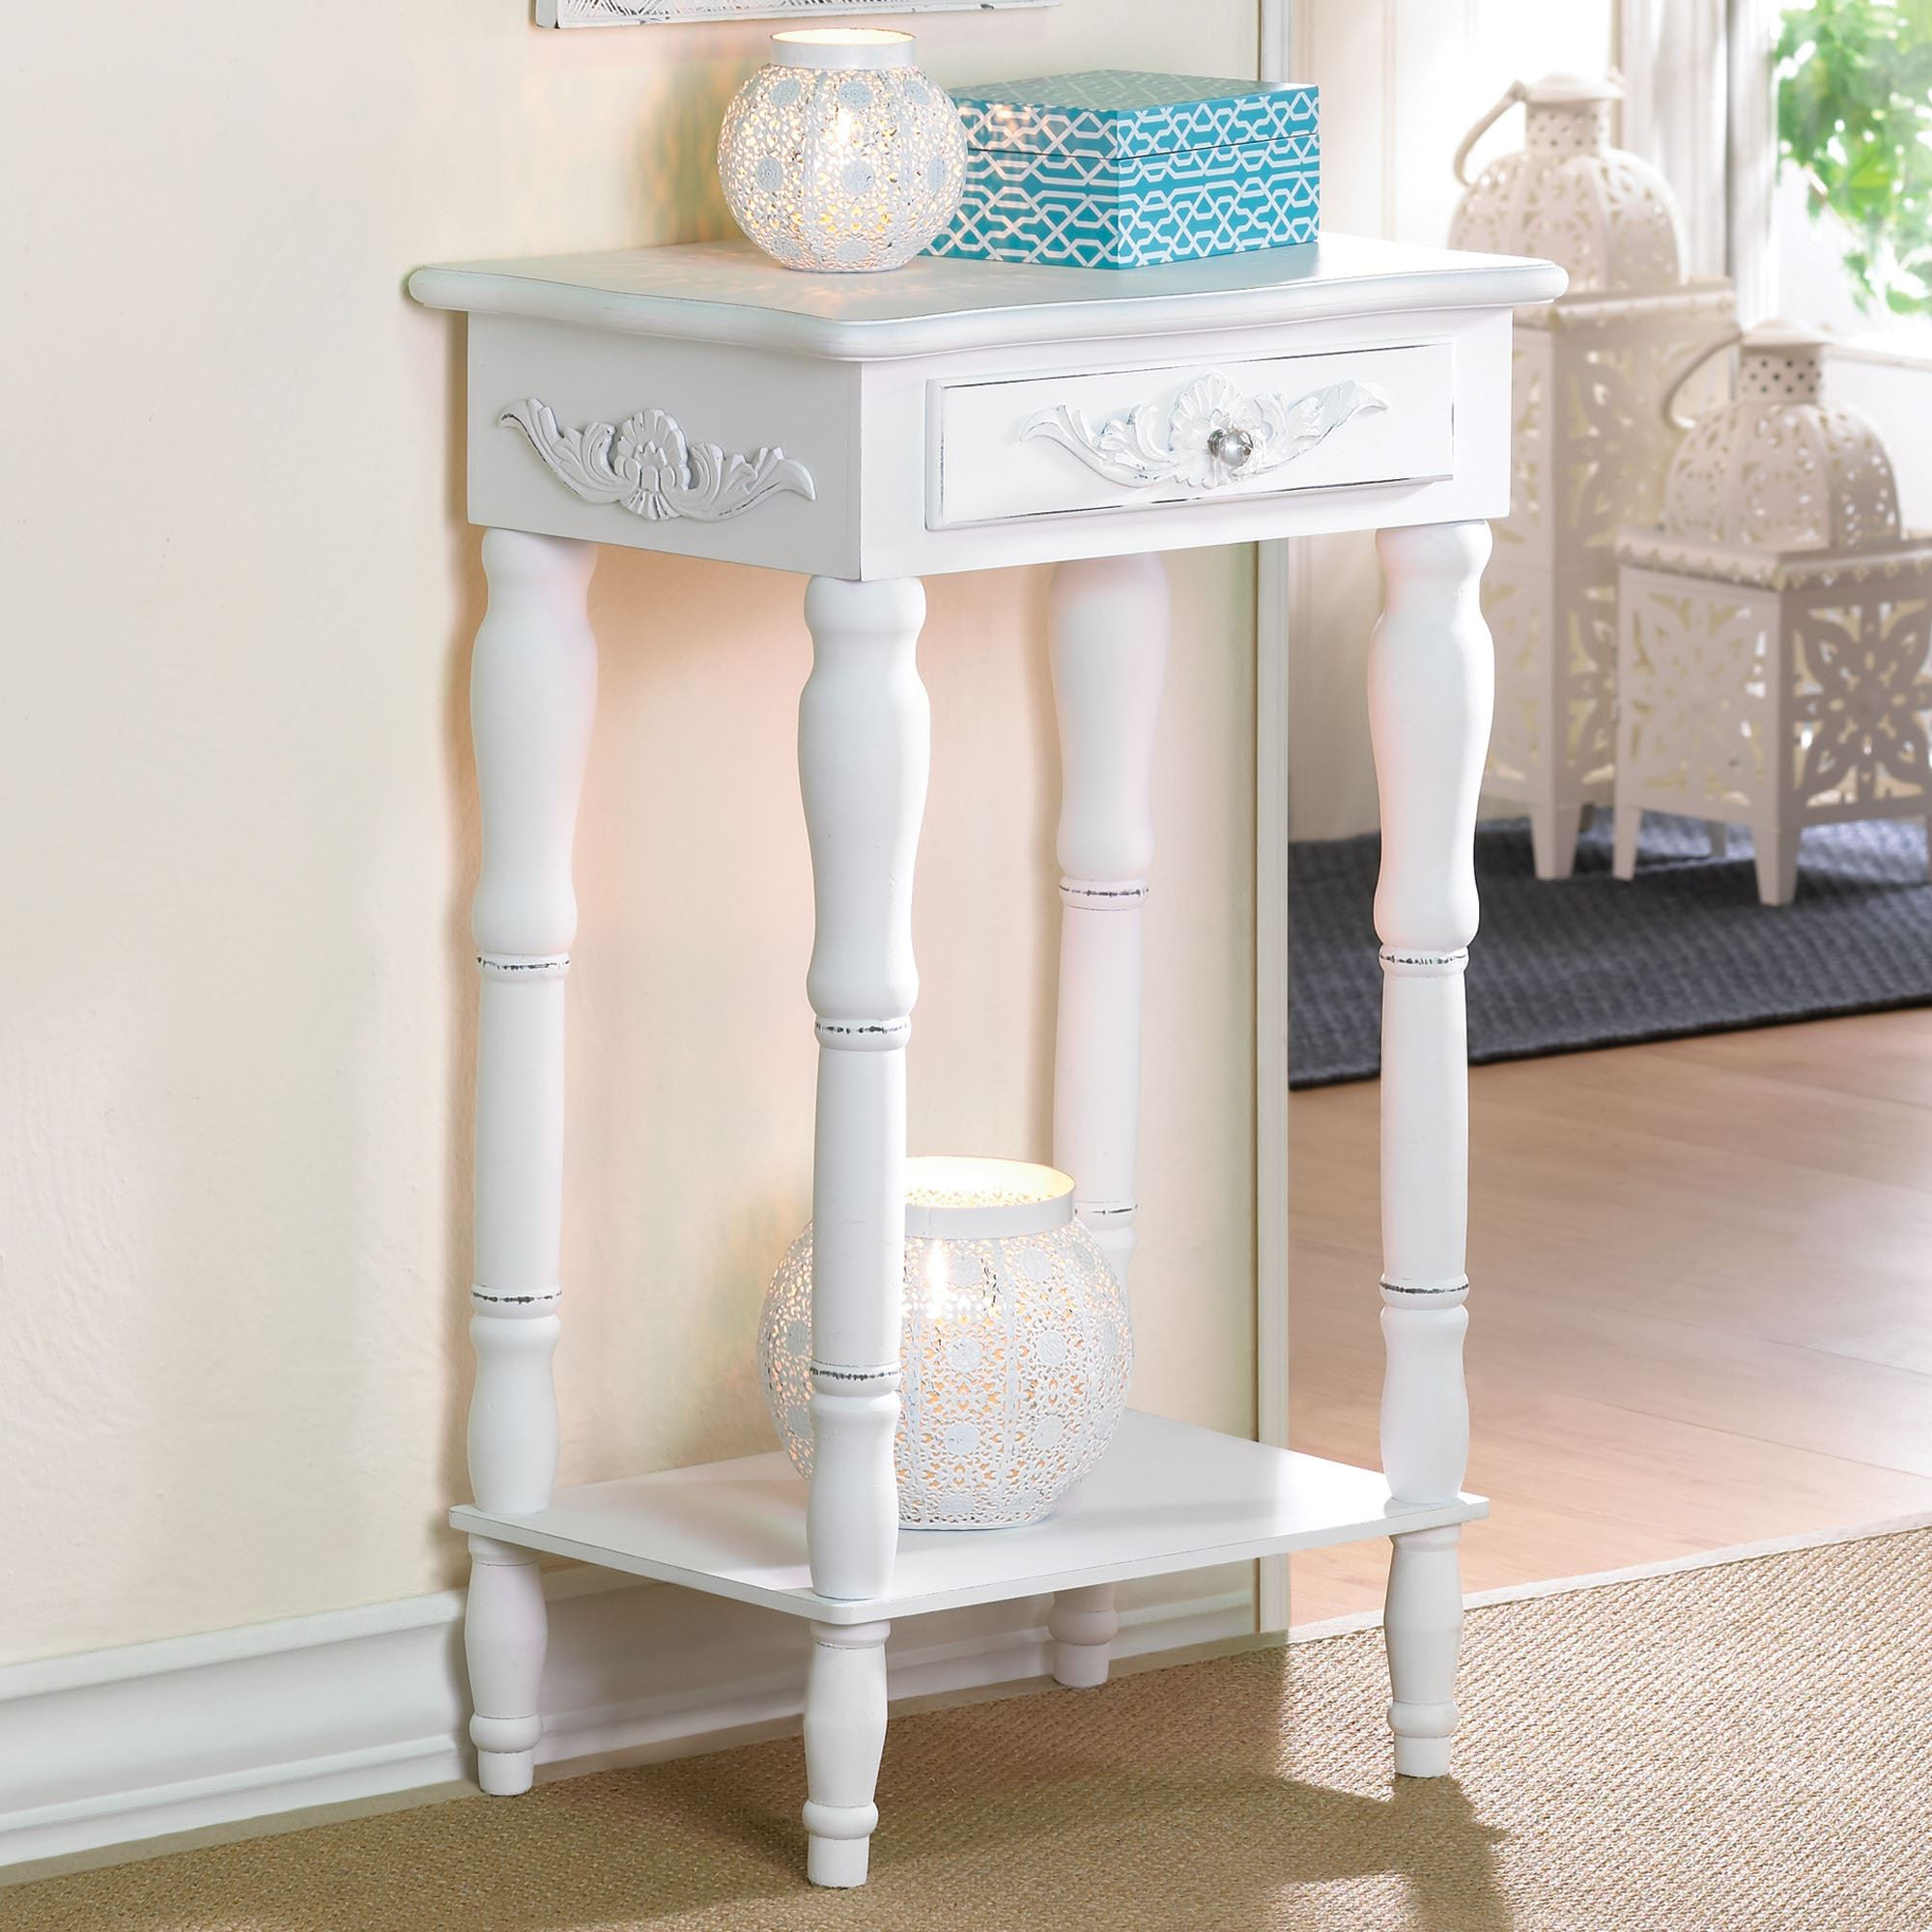 cosenza antique white accent table with drawer end tables drawers touch zoom new retro furniture patio side storage mirrored sofa silver inch square coffee most popular round